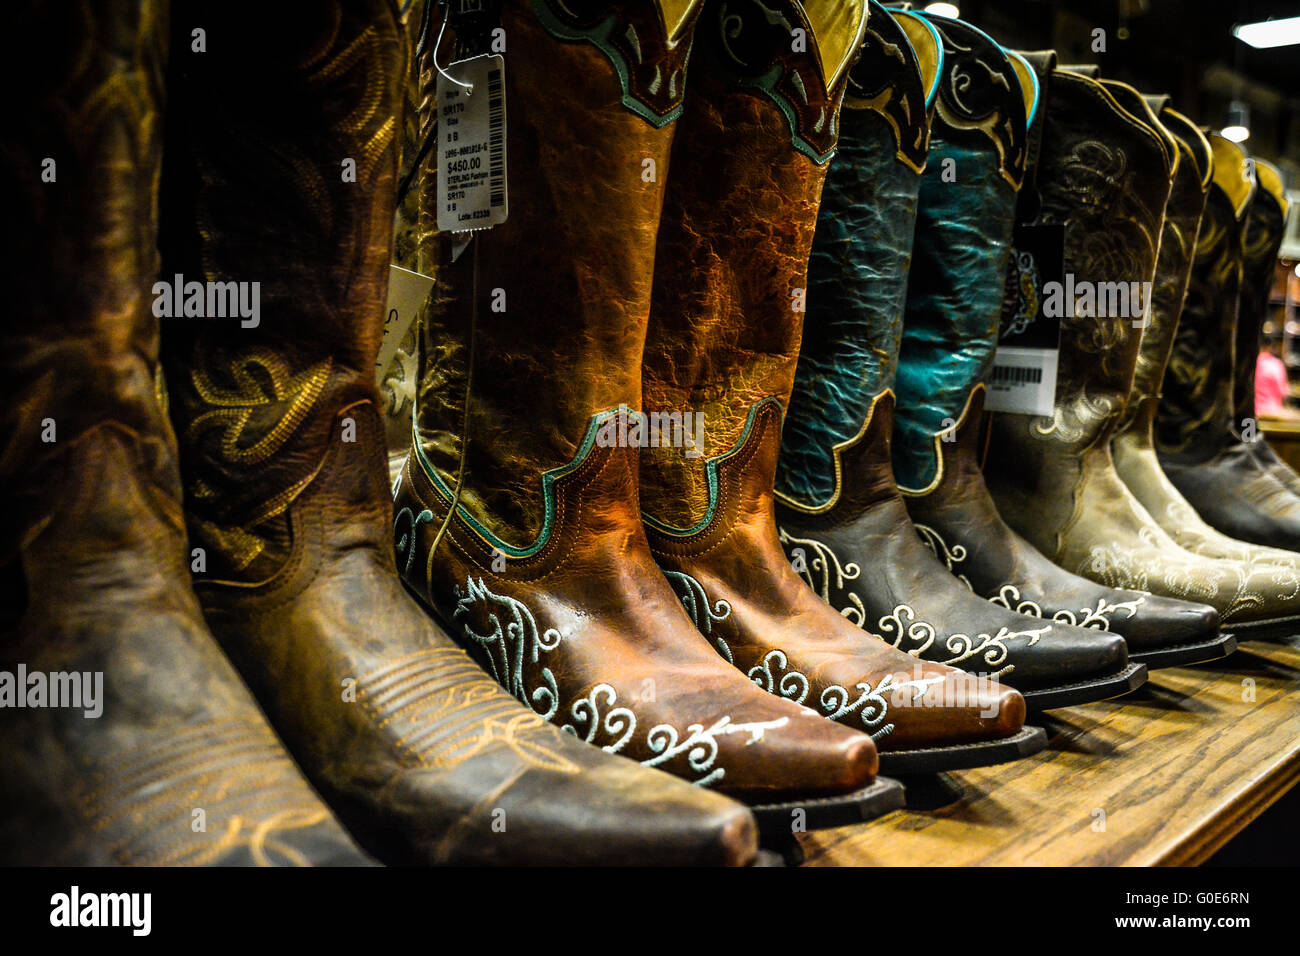 Cowboy Boot Store Stock Photos Amp Cowboy Boot Store Stock